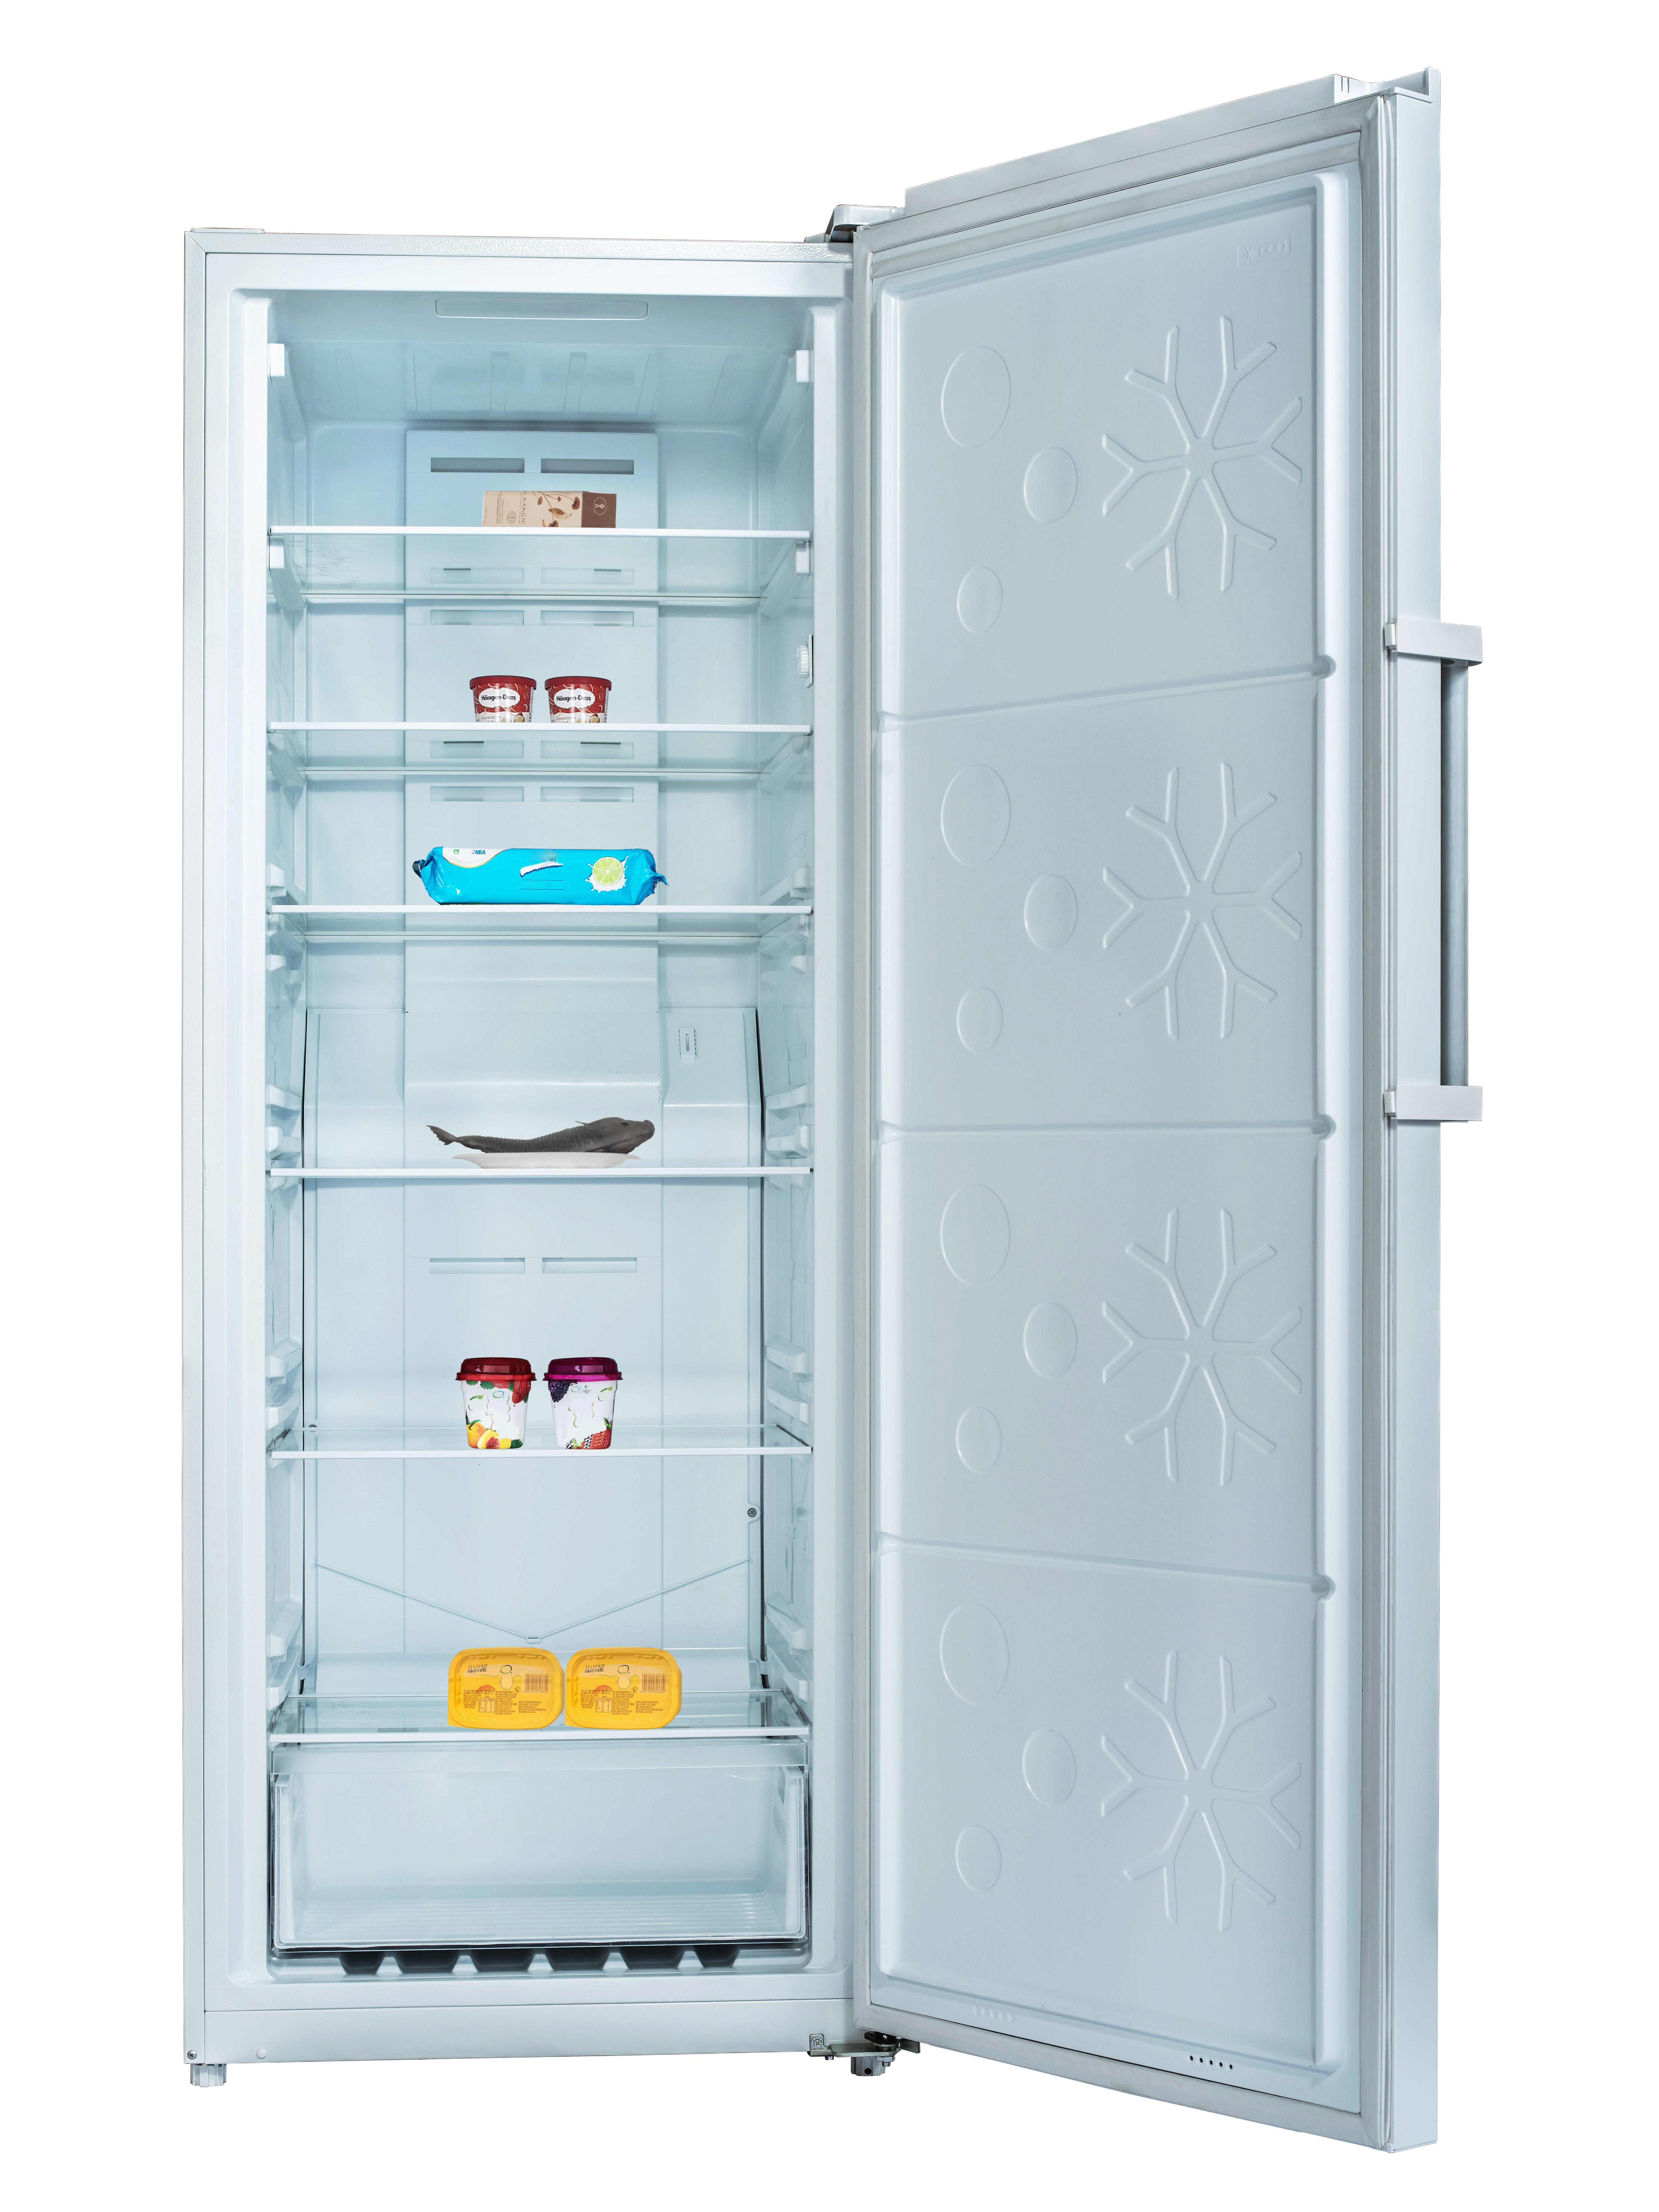 Conserv 13.5 cu. ft. Frost Free Upright Freezer in Stainless with Reversible Door